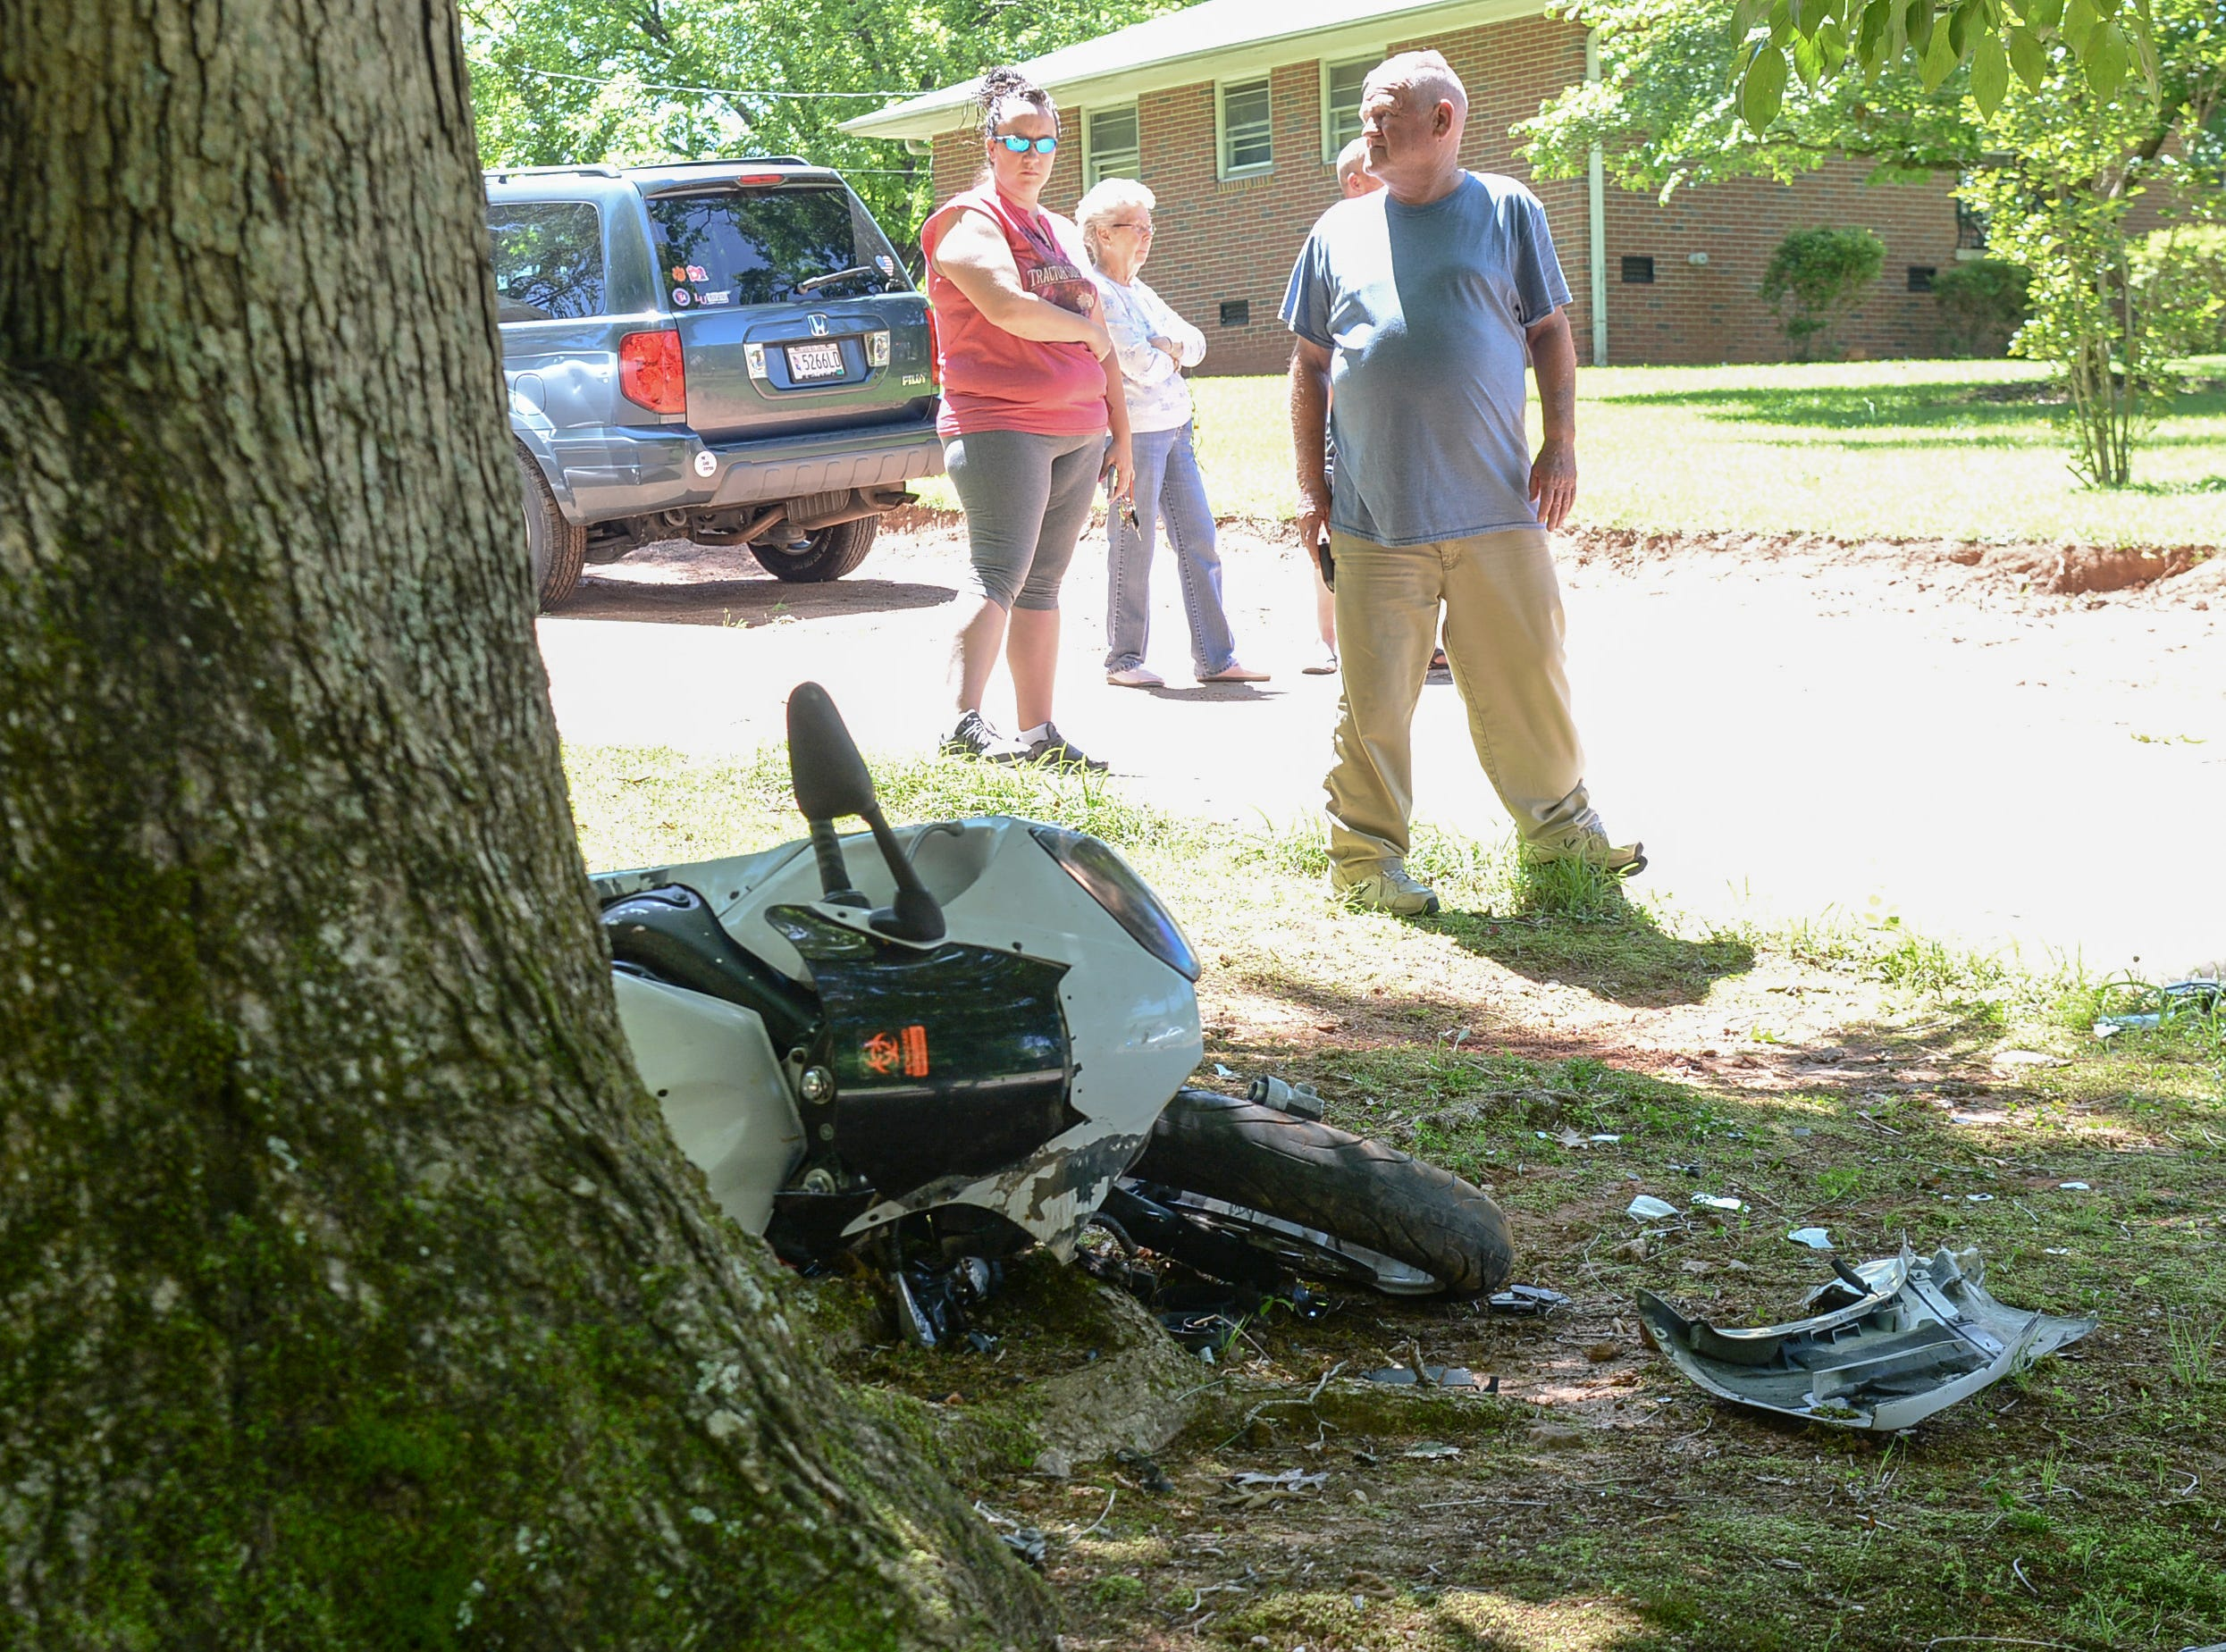 Homeland Park firemen and Medshore responded to a motorcycle accident on Ponce De Leon Drive in Anderson Tuesday.